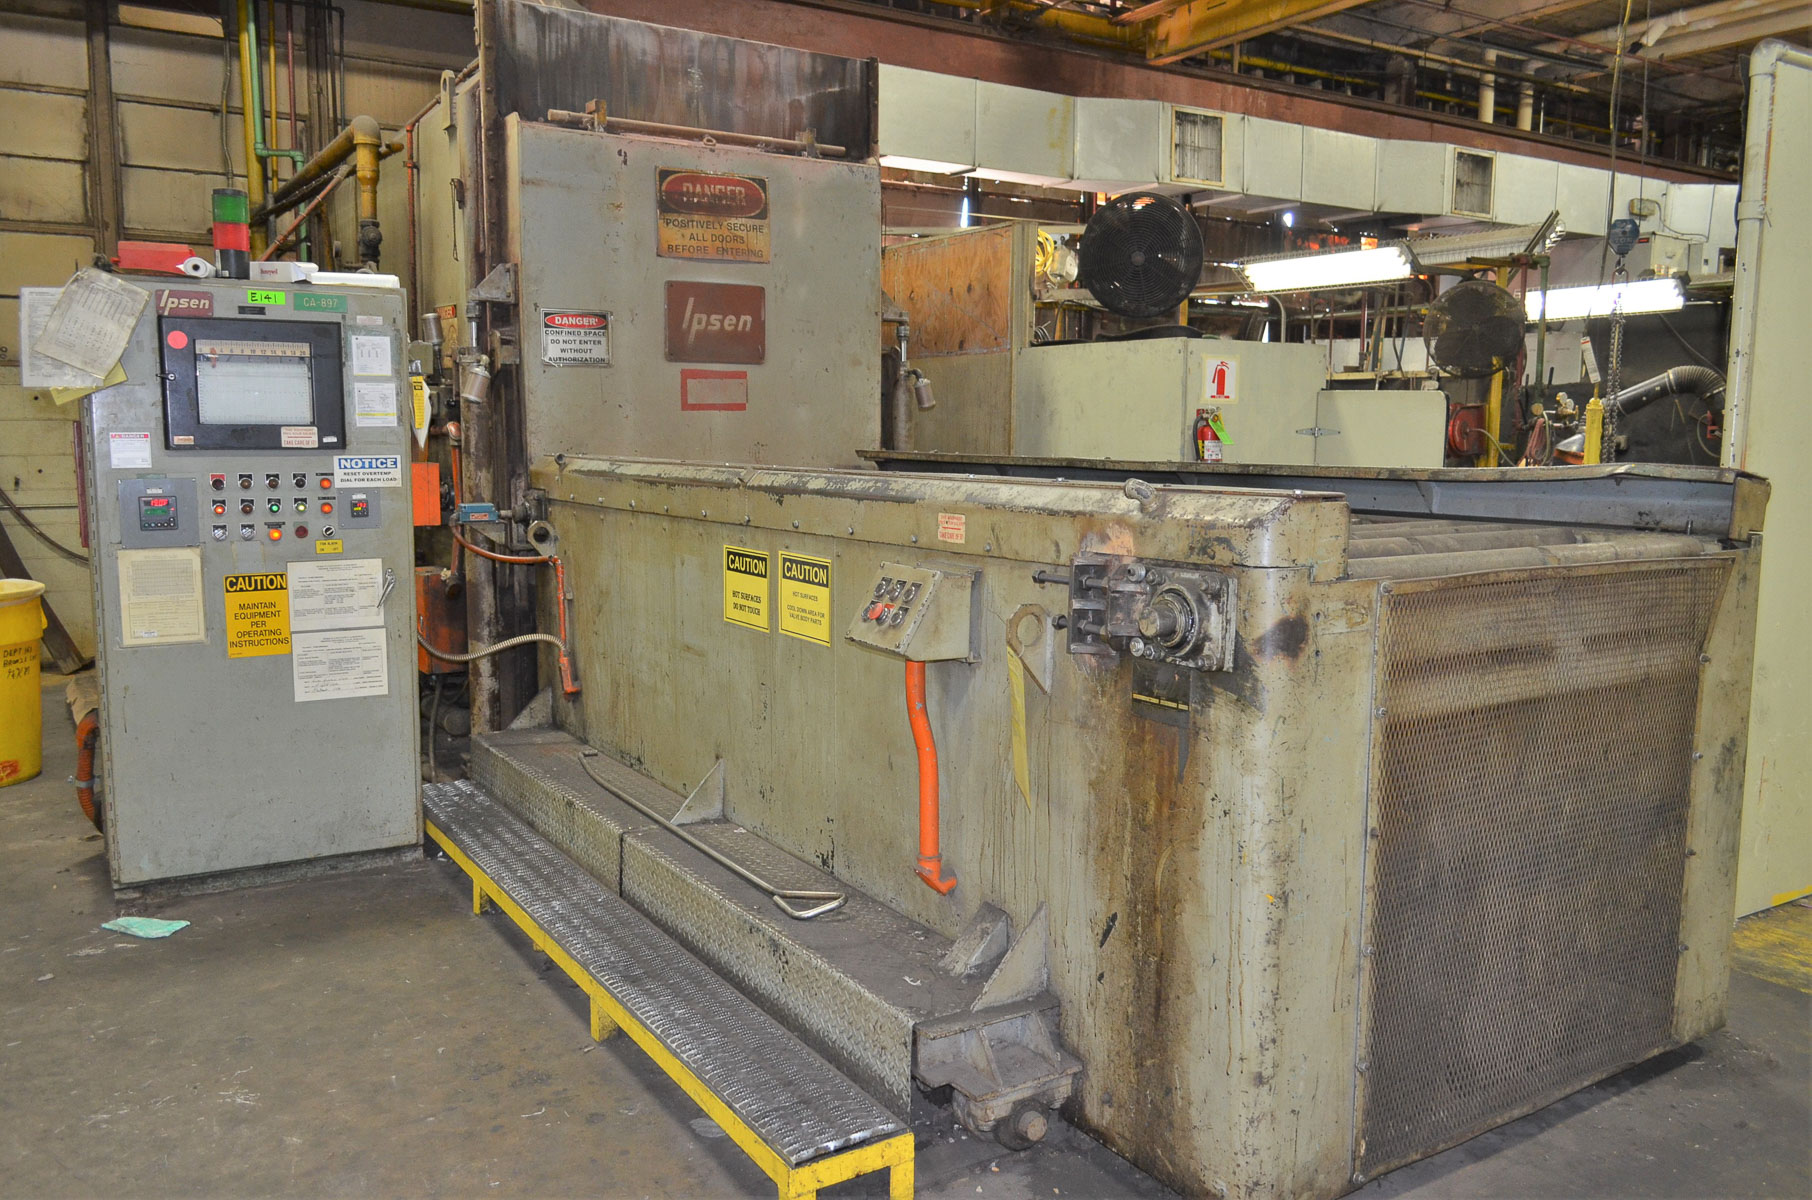 Surplus to the Ongoing Needs of GE Oil & Gas - Koster Industries